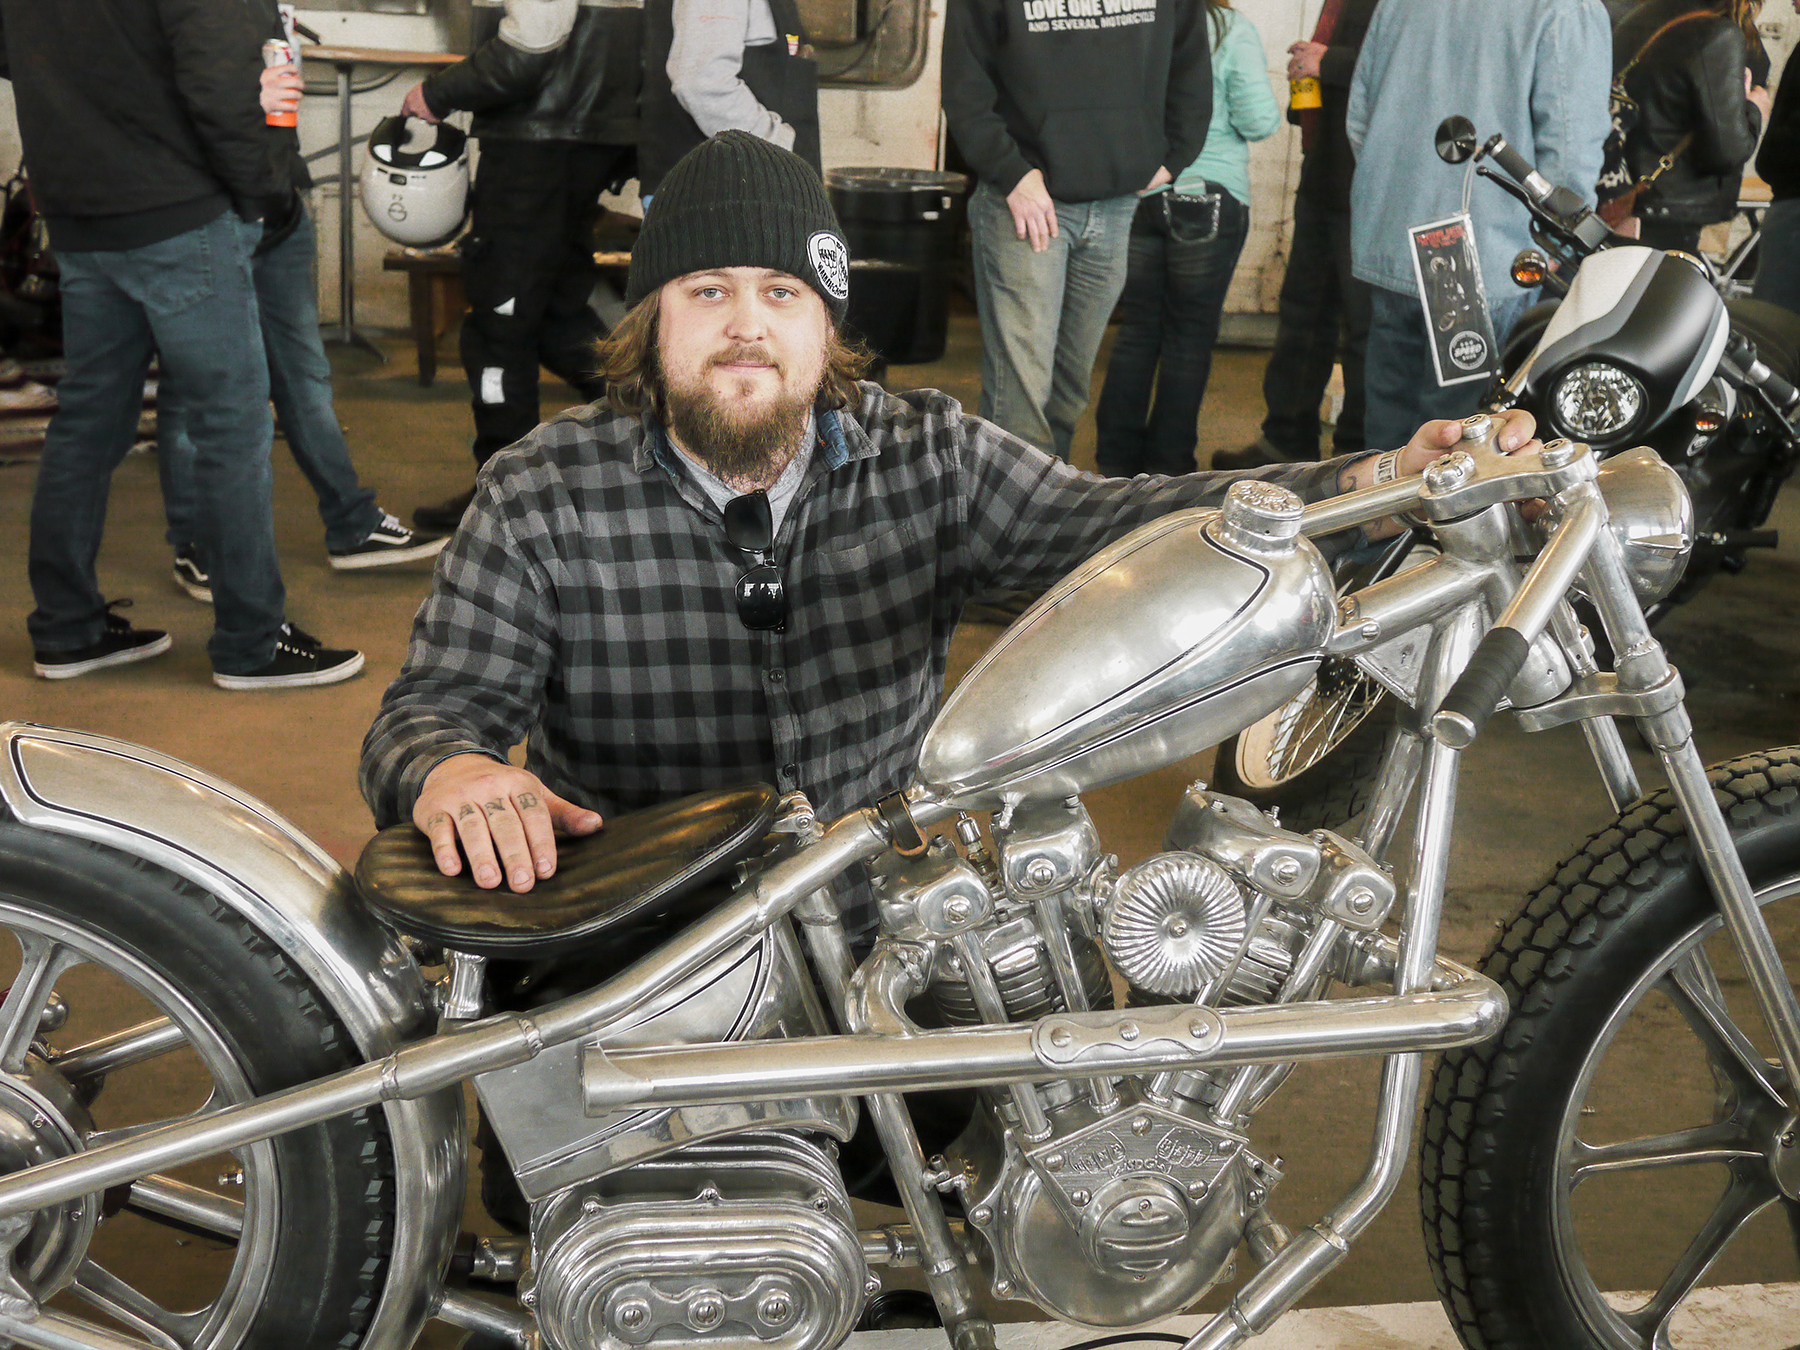 Motorcycle builder and machinist Ricky De Haas with his electric powered creation. The attention to detail in the castings is amazing.